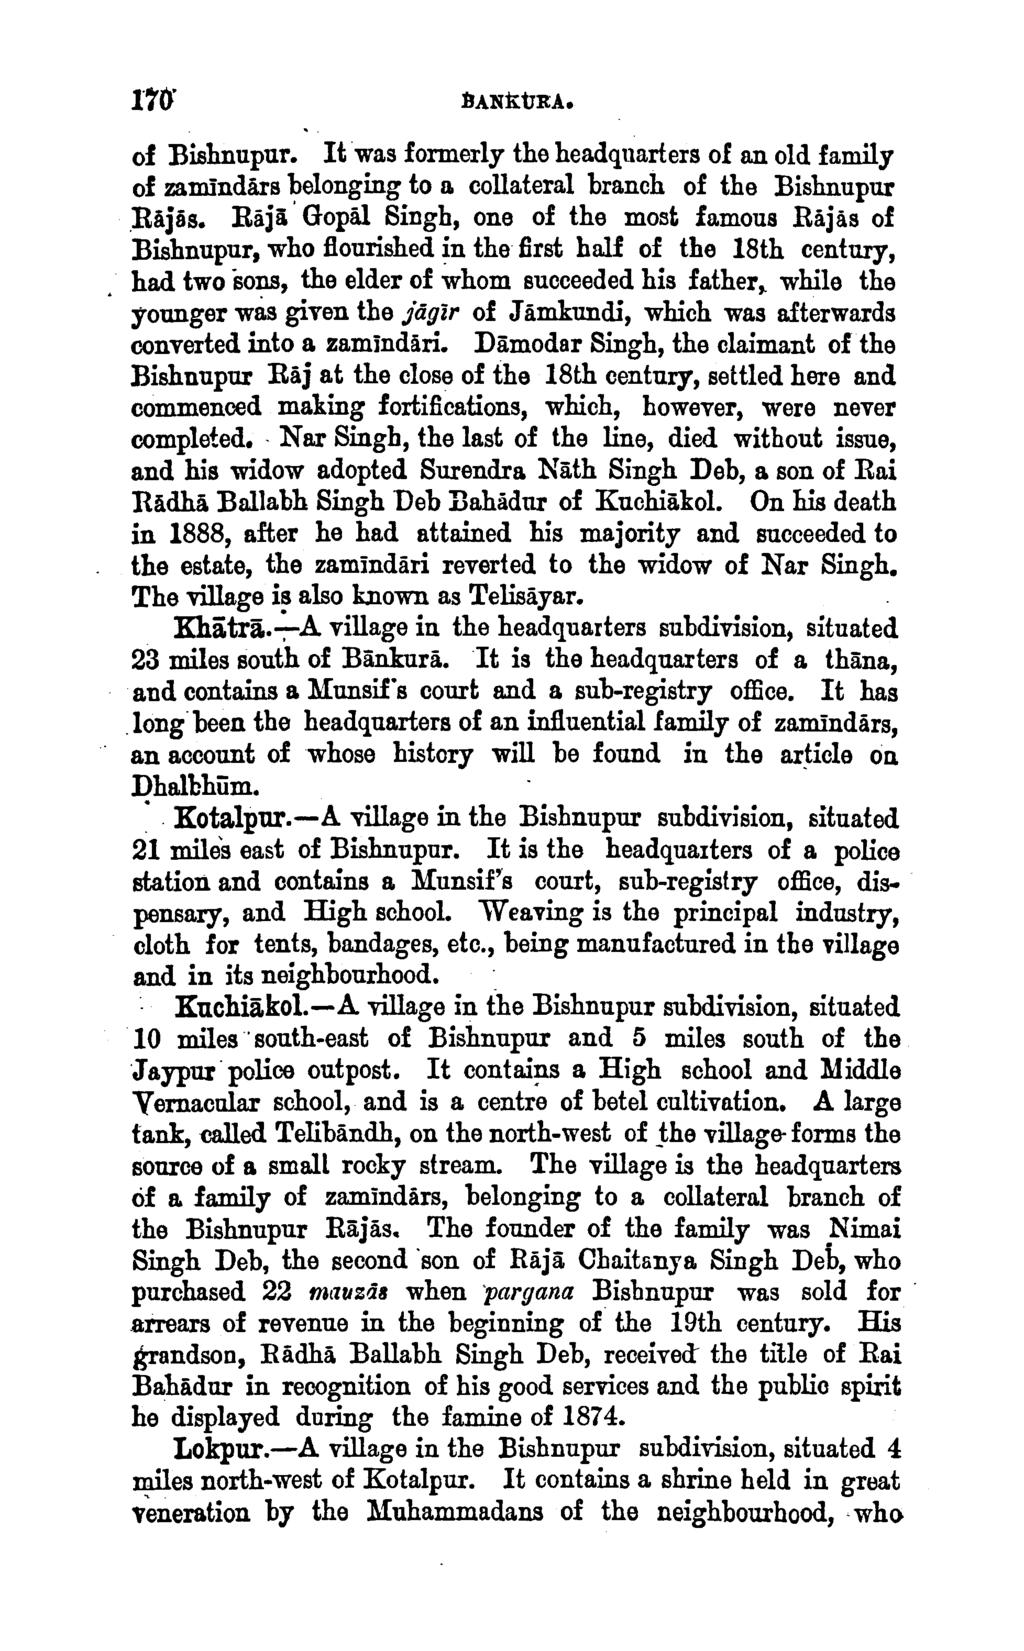 BAN:k.URA. of Bishnupur. It was formerly the headquarters of an old family of zam.indars belonging to a collateral branch of the Bishnupur.Rajas.